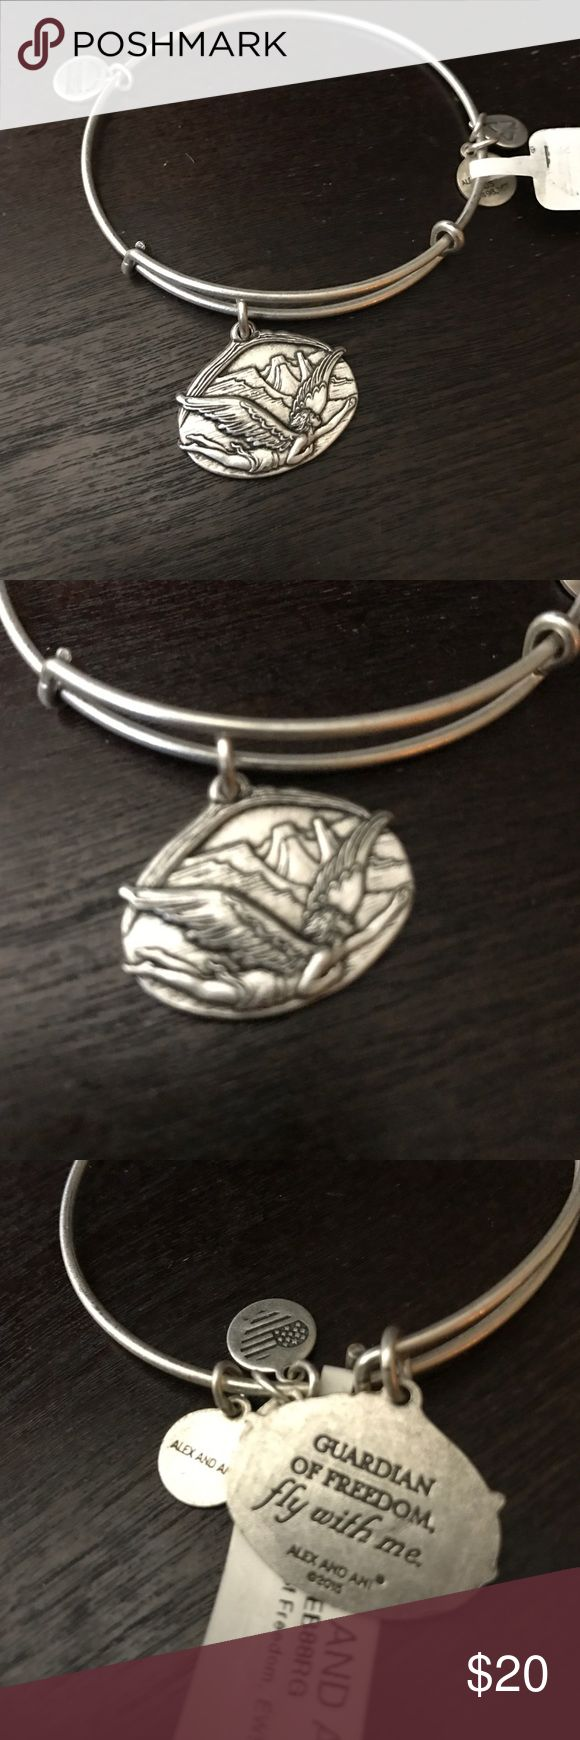 Alex and Ani silver bracelet Alex and Ani silver guardian of freedom, fly with me. New with retail tags Alex & Ani Jewelry Bracelets